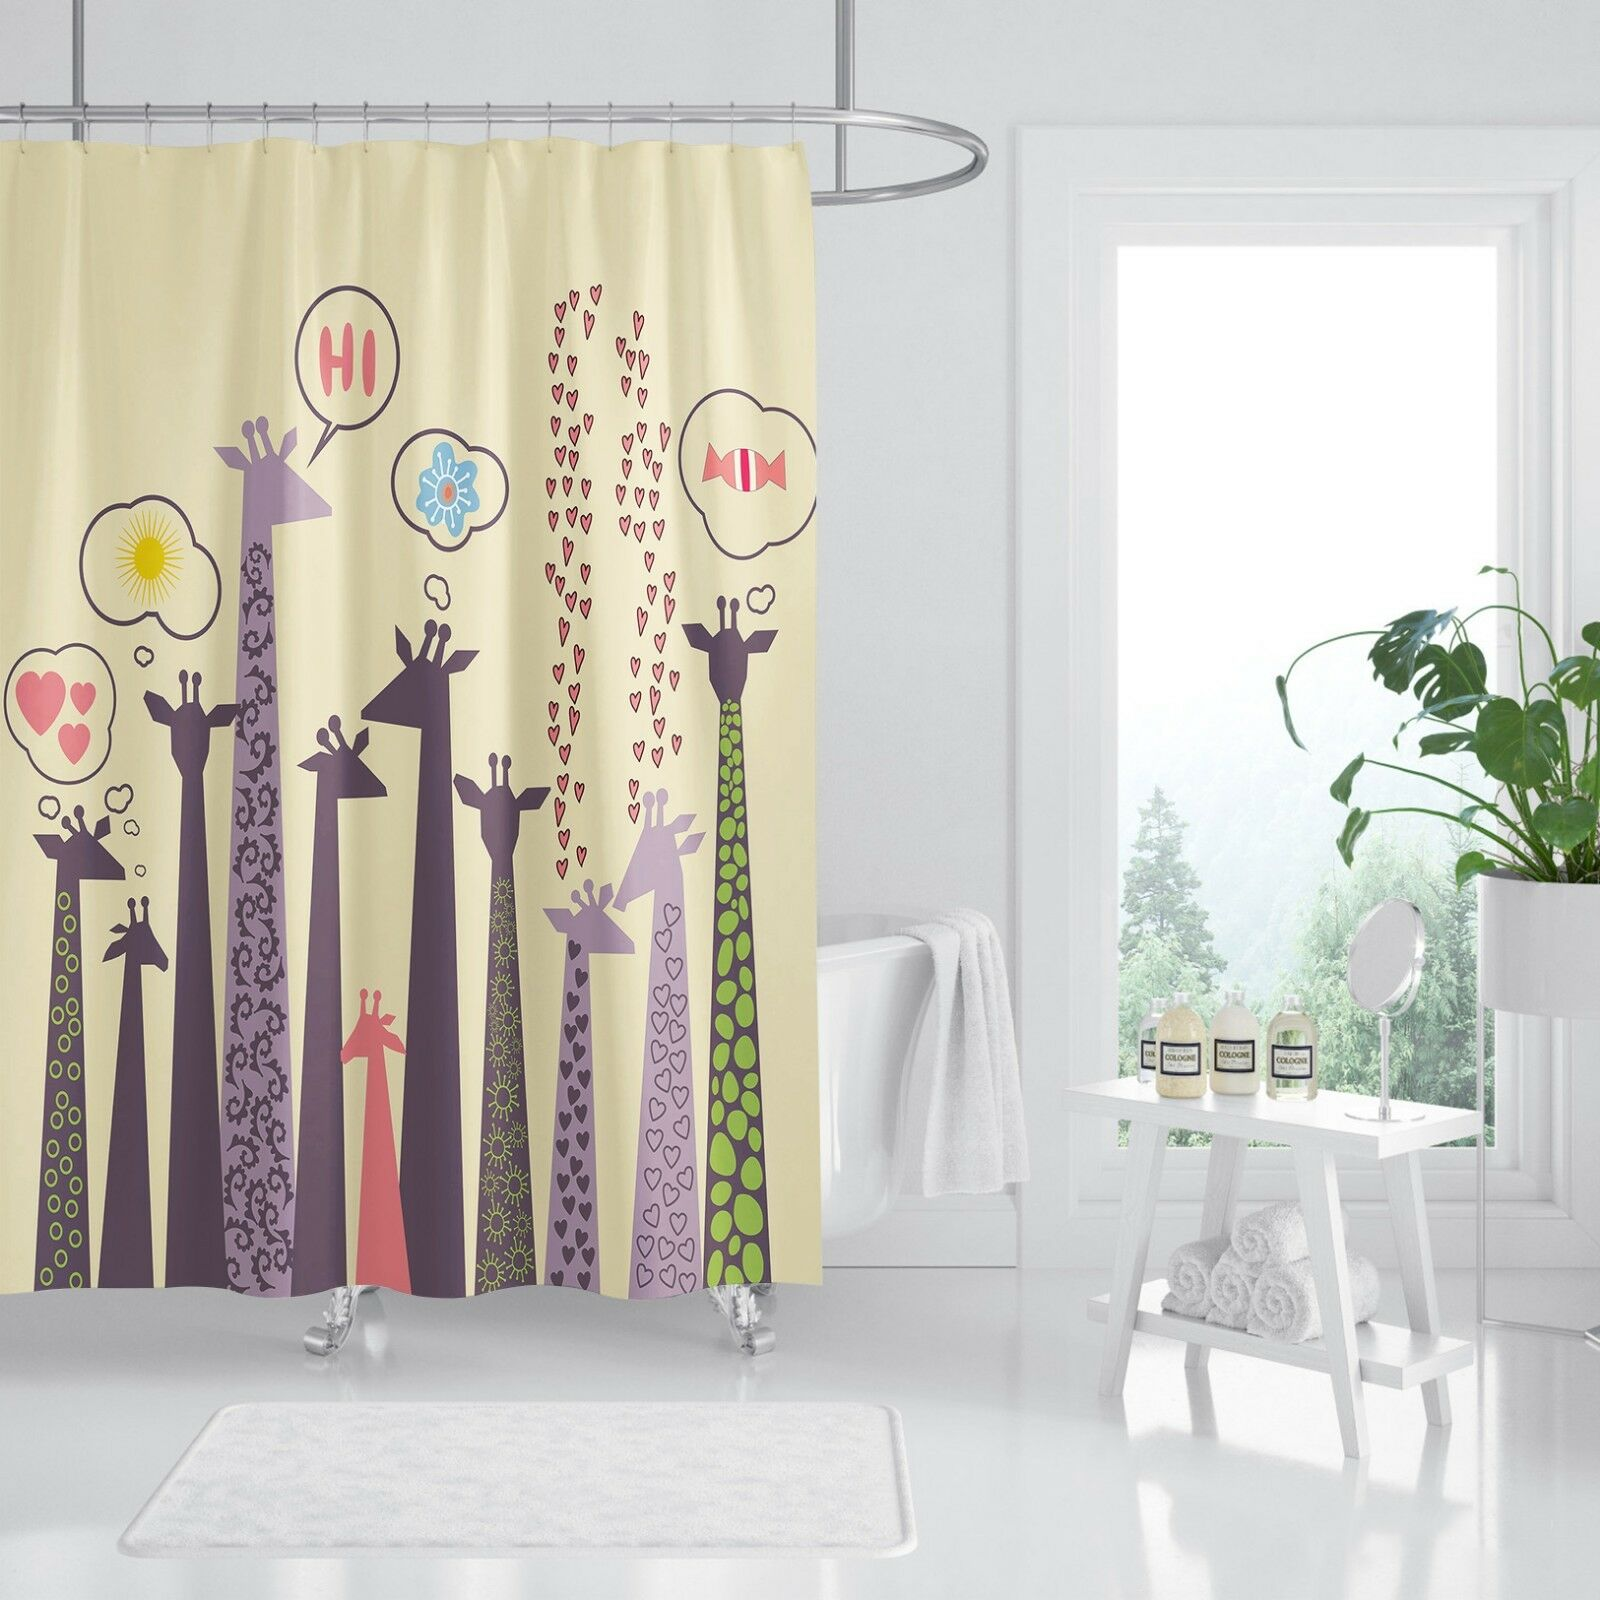 Curtains, Drapes & Valances 3d Nette Giraffe 9 Duschvorhang Wasserdicht Faser Bad Daheim Window Toilette De Home & Garden